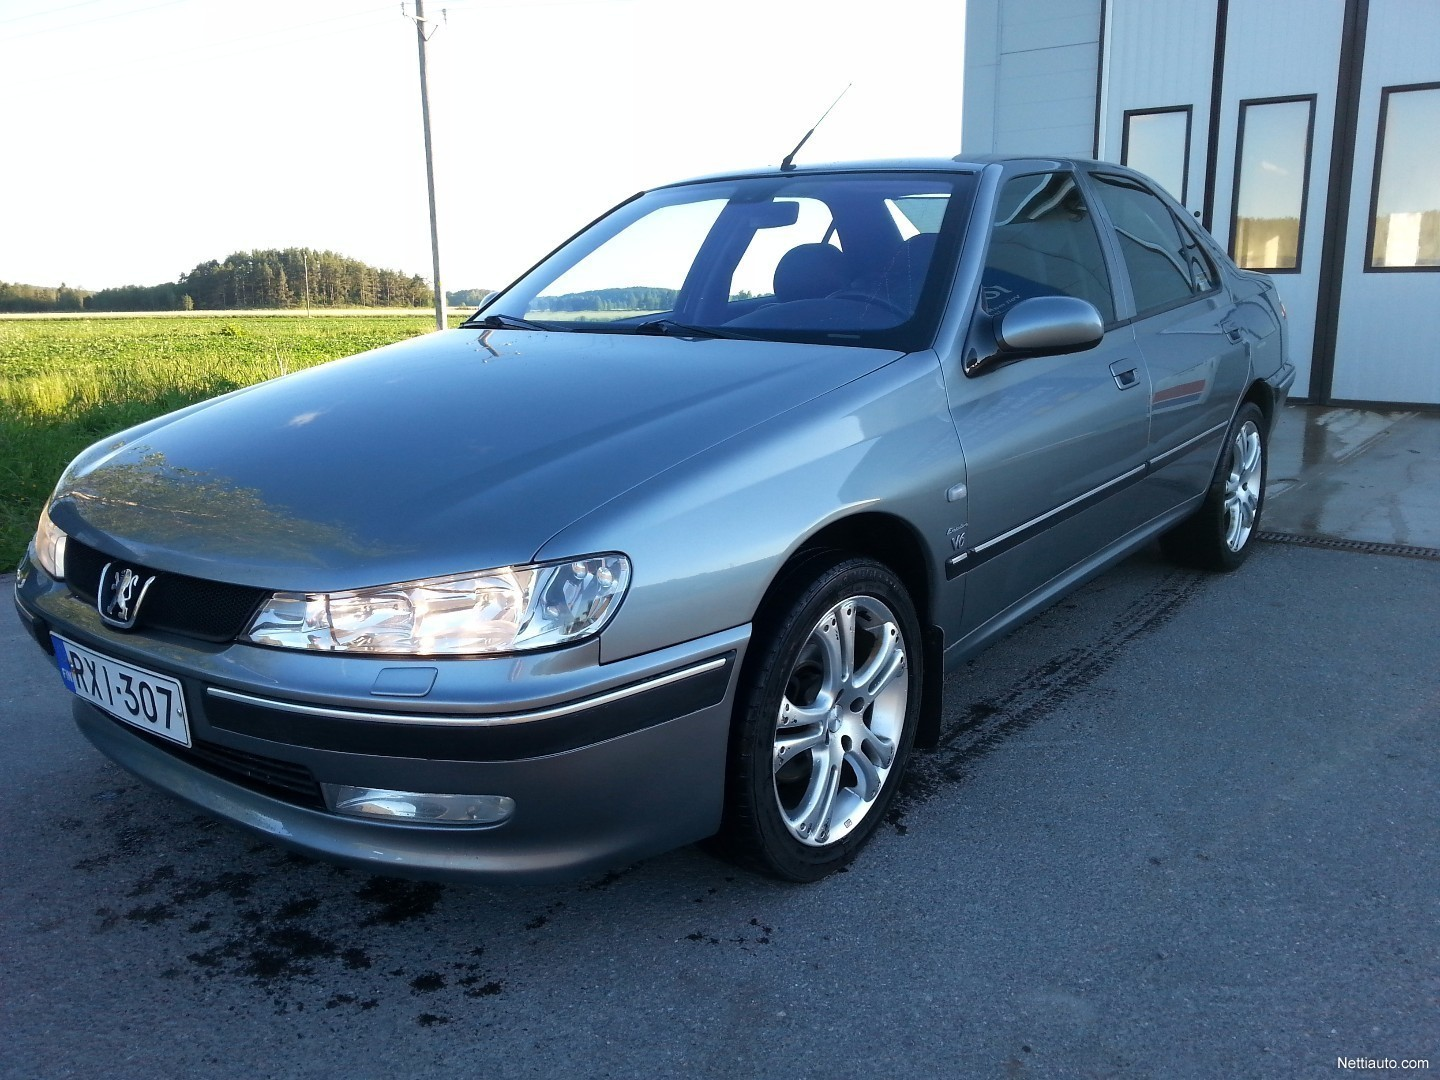 peugeot 406 v6 executive 3 0 4d sedan 2003 used vehicle nettiauto. Black Bedroom Furniture Sets. Home Design Ideas